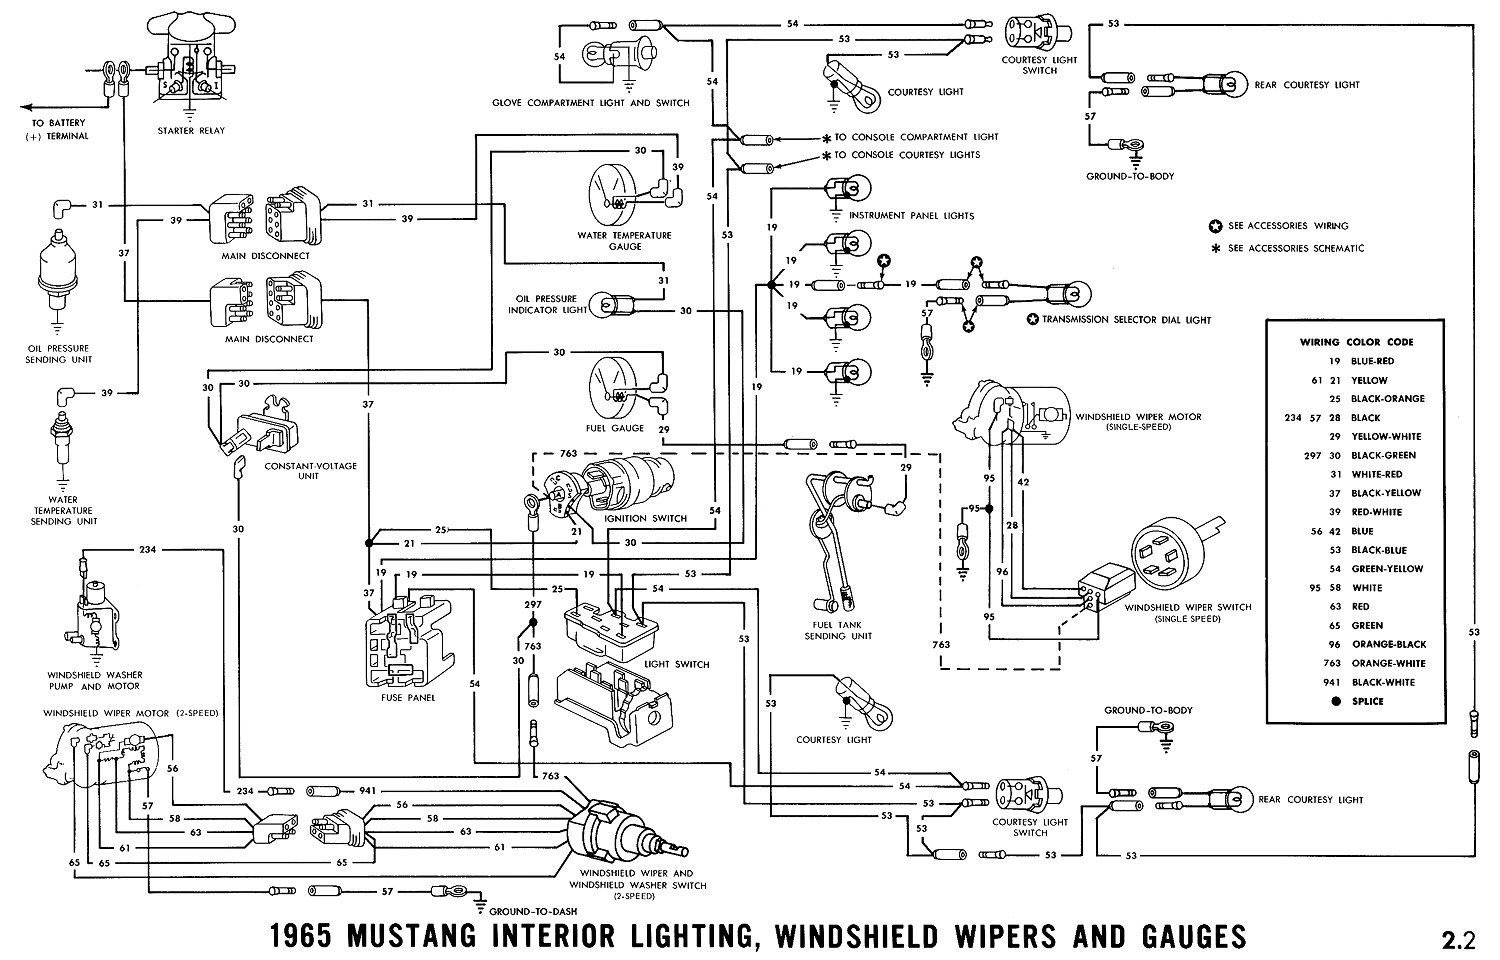 1965g ford wiper switch wiring diagram delay wiper switch wiring diagram universal wiper motor wiring diagram at bayanpartner.co